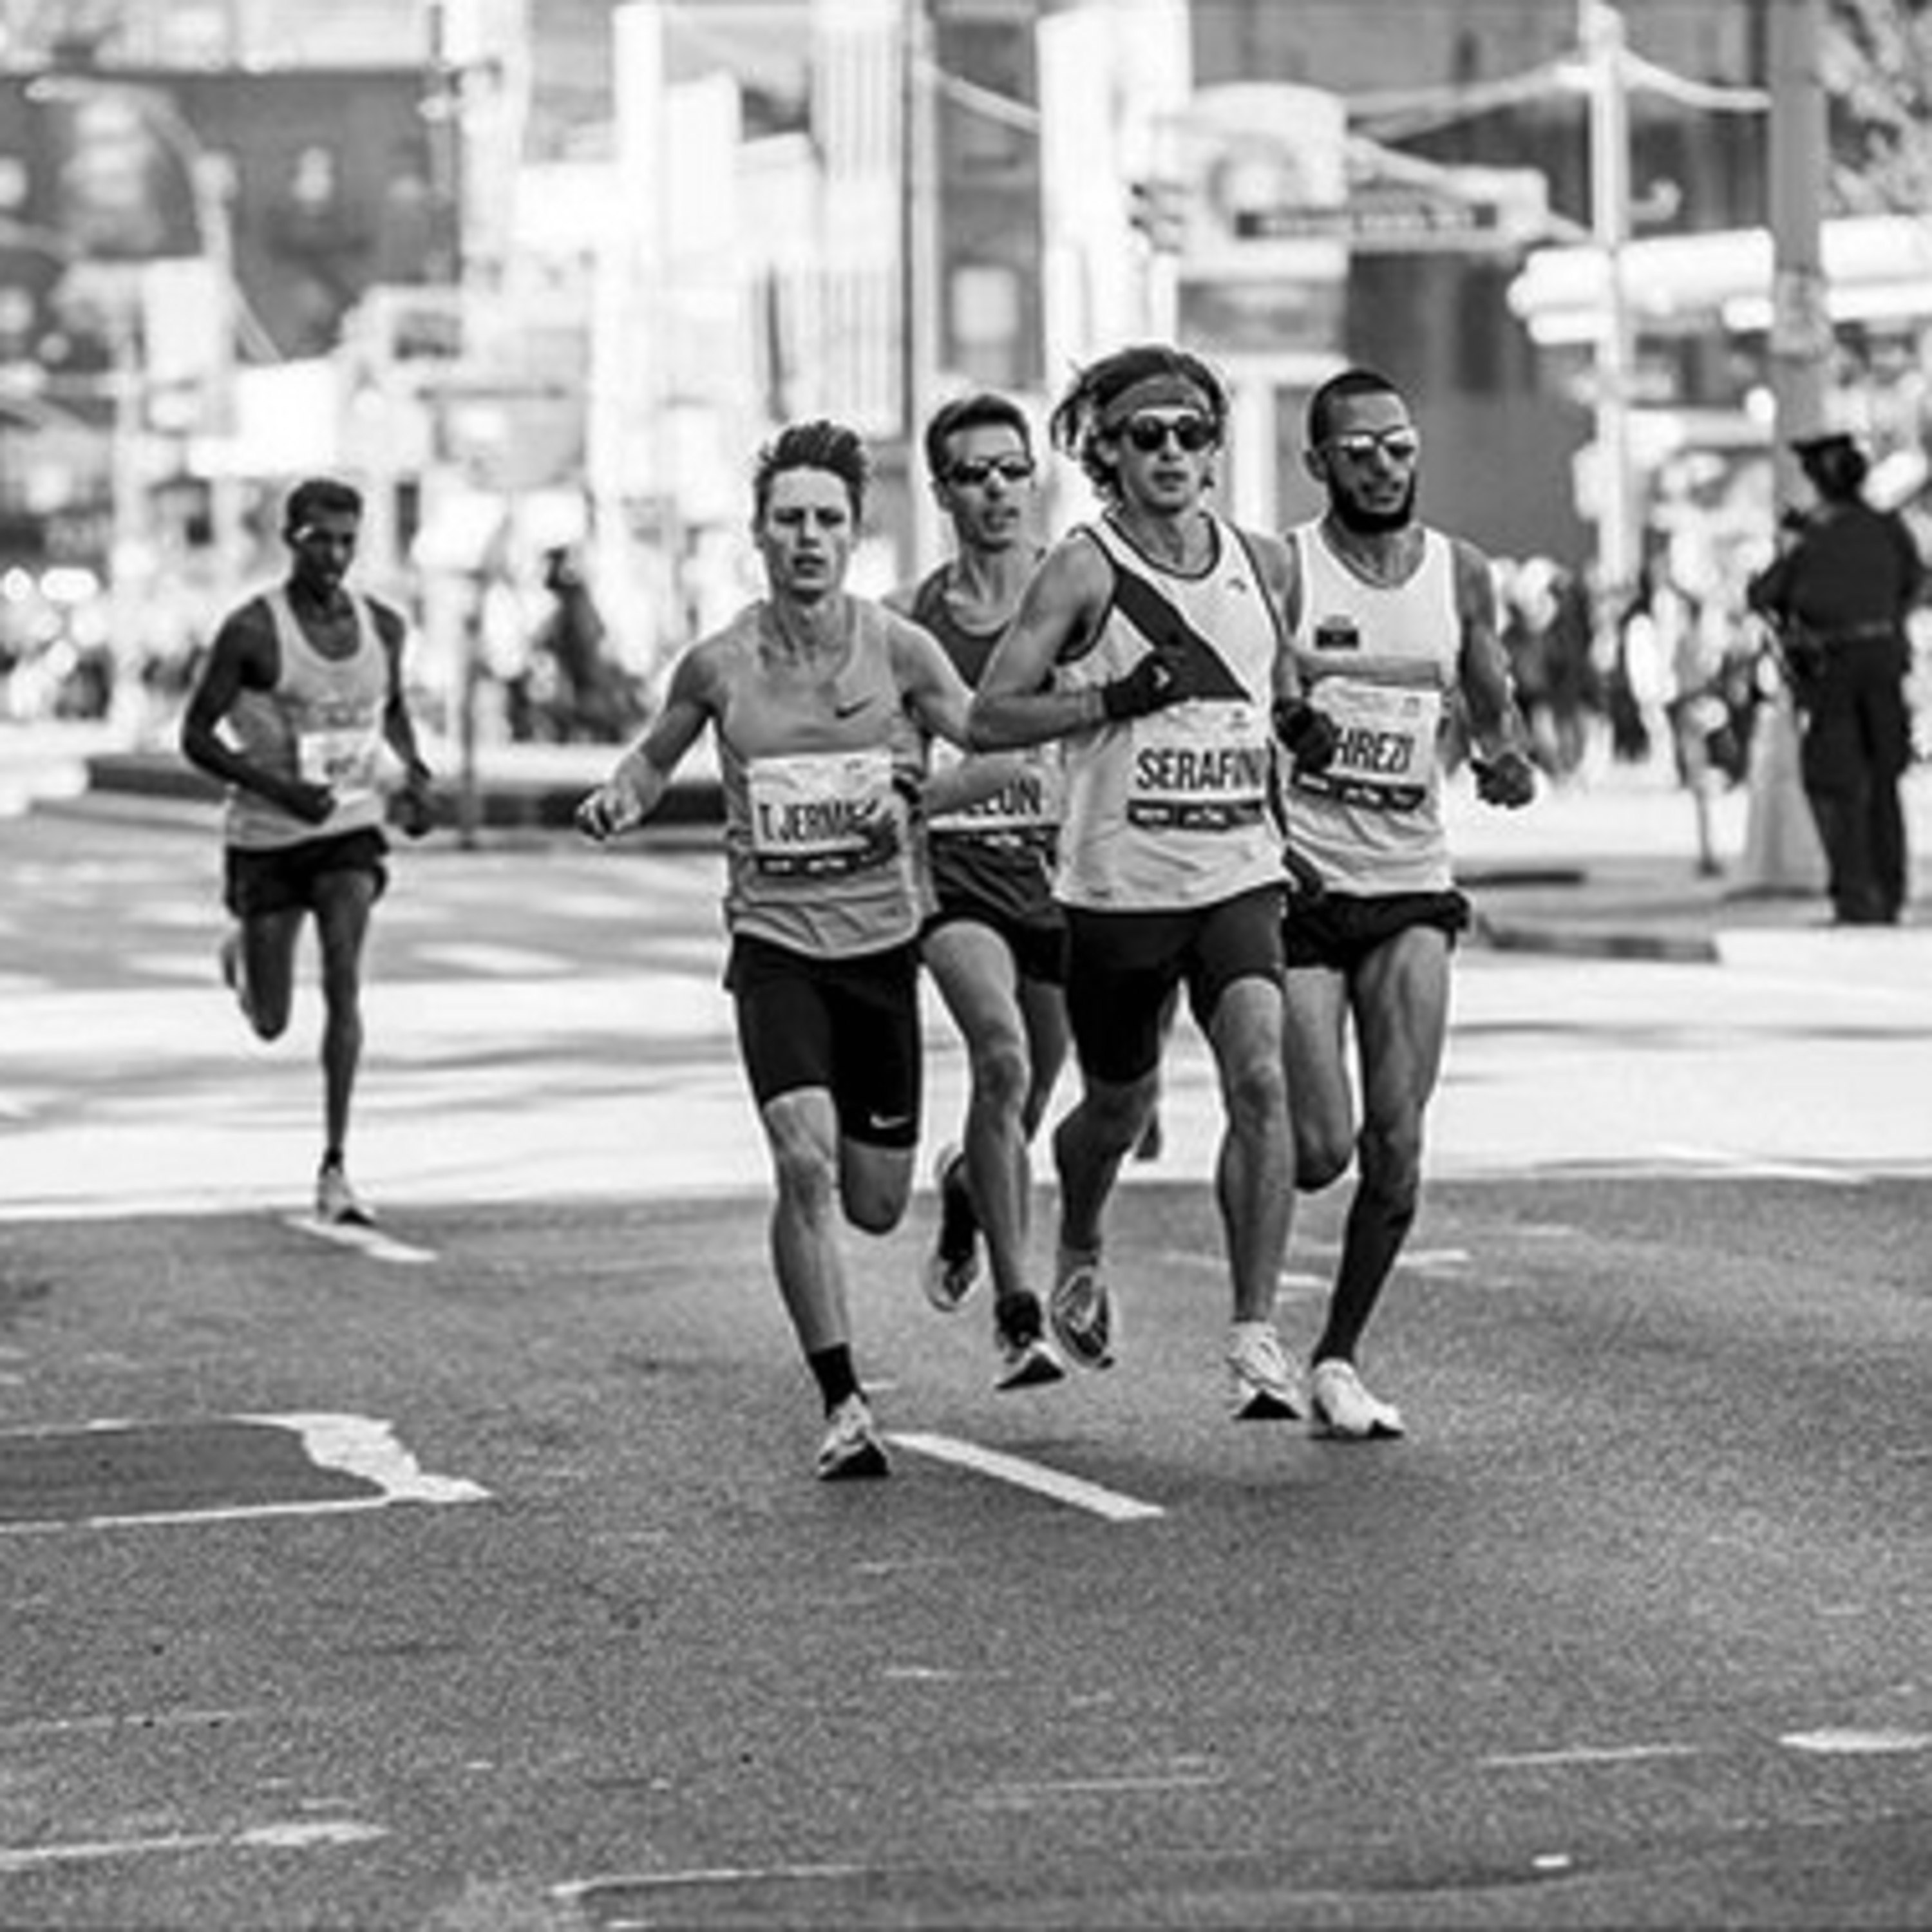 52. Lou Serafini: Helping Others Find Joy In Running